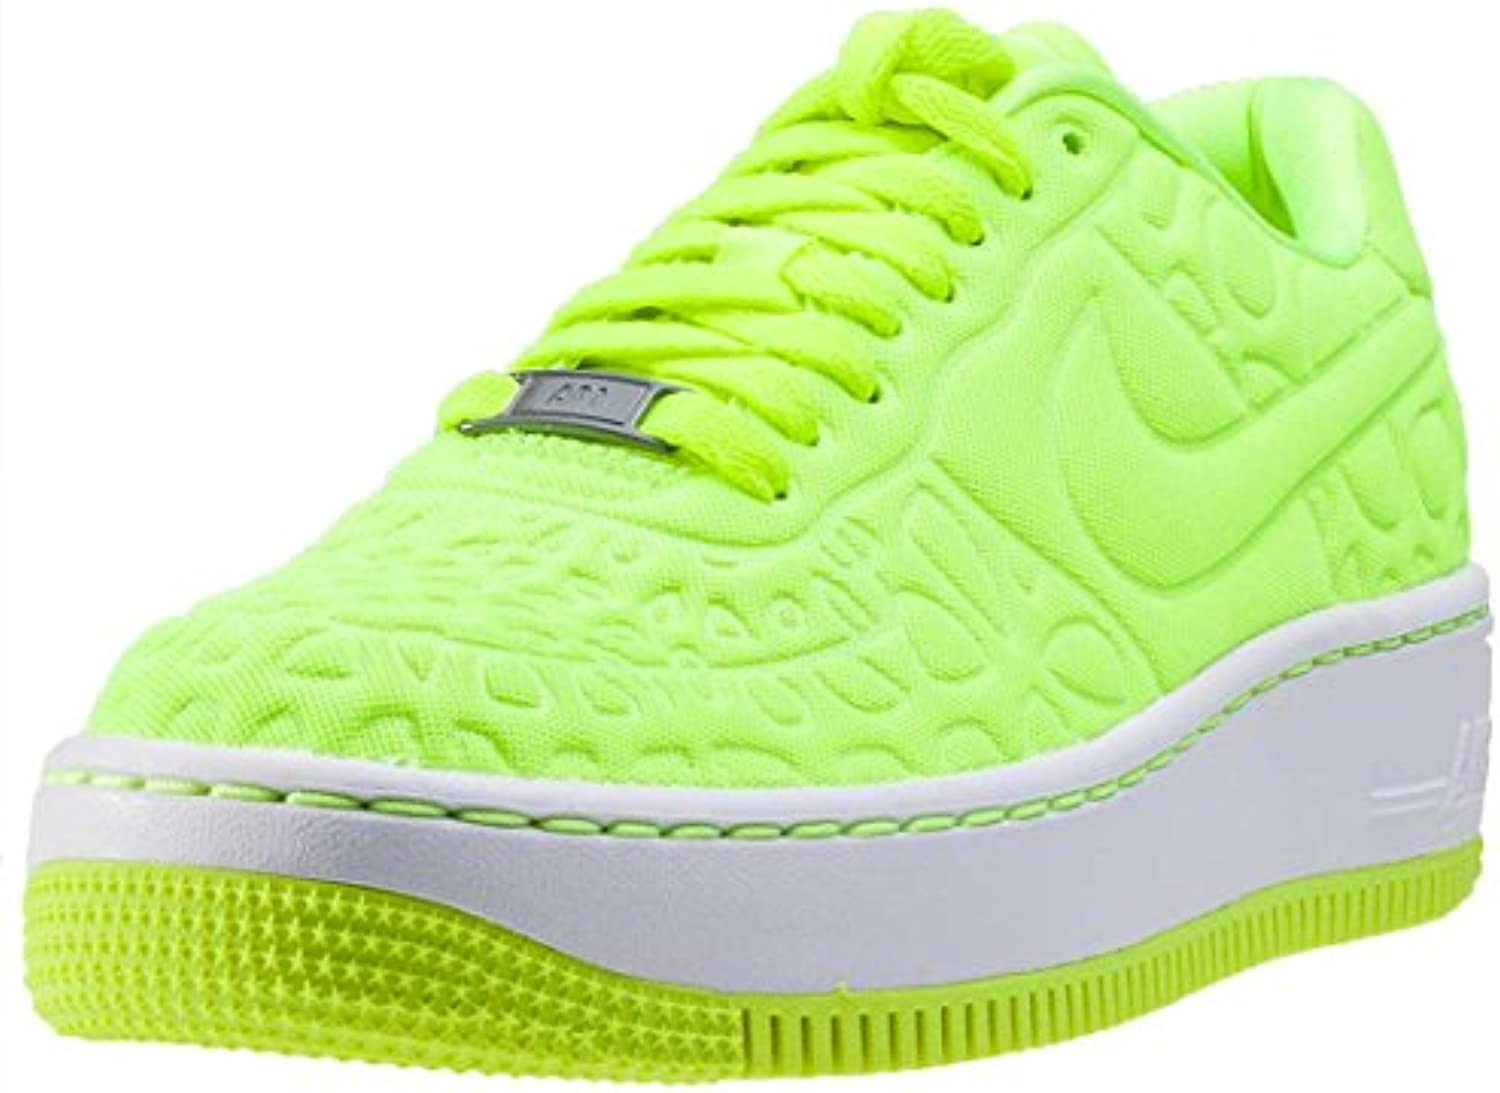 nike nike nike woHommes  & eacute; conditionneHommes t 844877-700 chaussures b01lzp5iky parent bb9c63